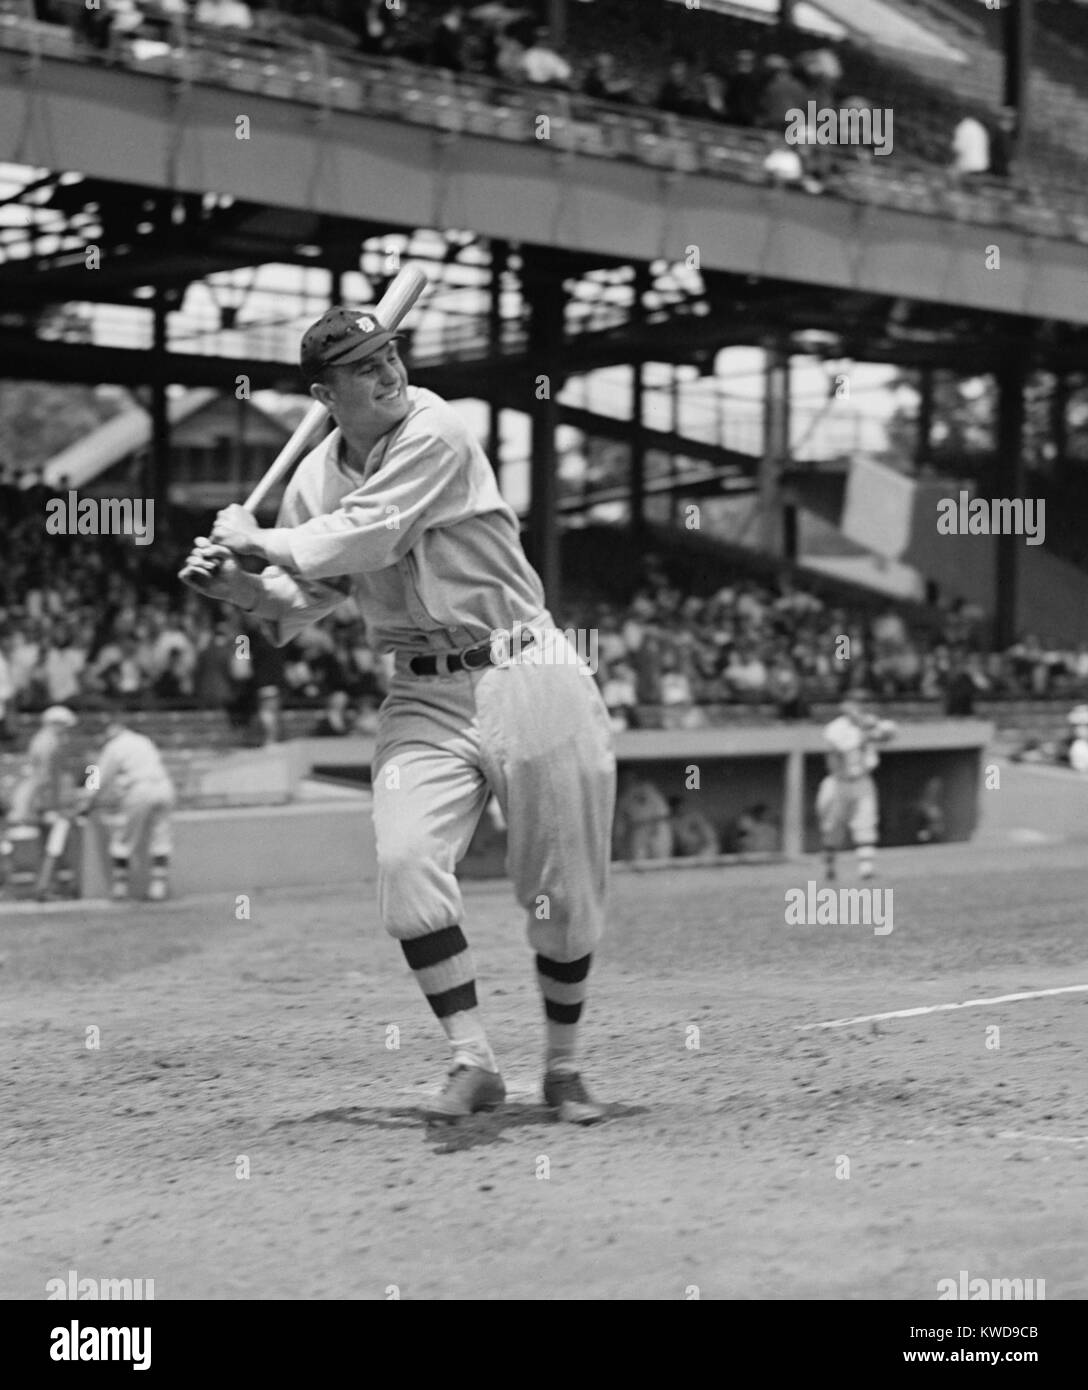 Heinie Manush in batting stance in his second Major League season with the Detroit Tigers, 1924. Manush won the - Stock Image